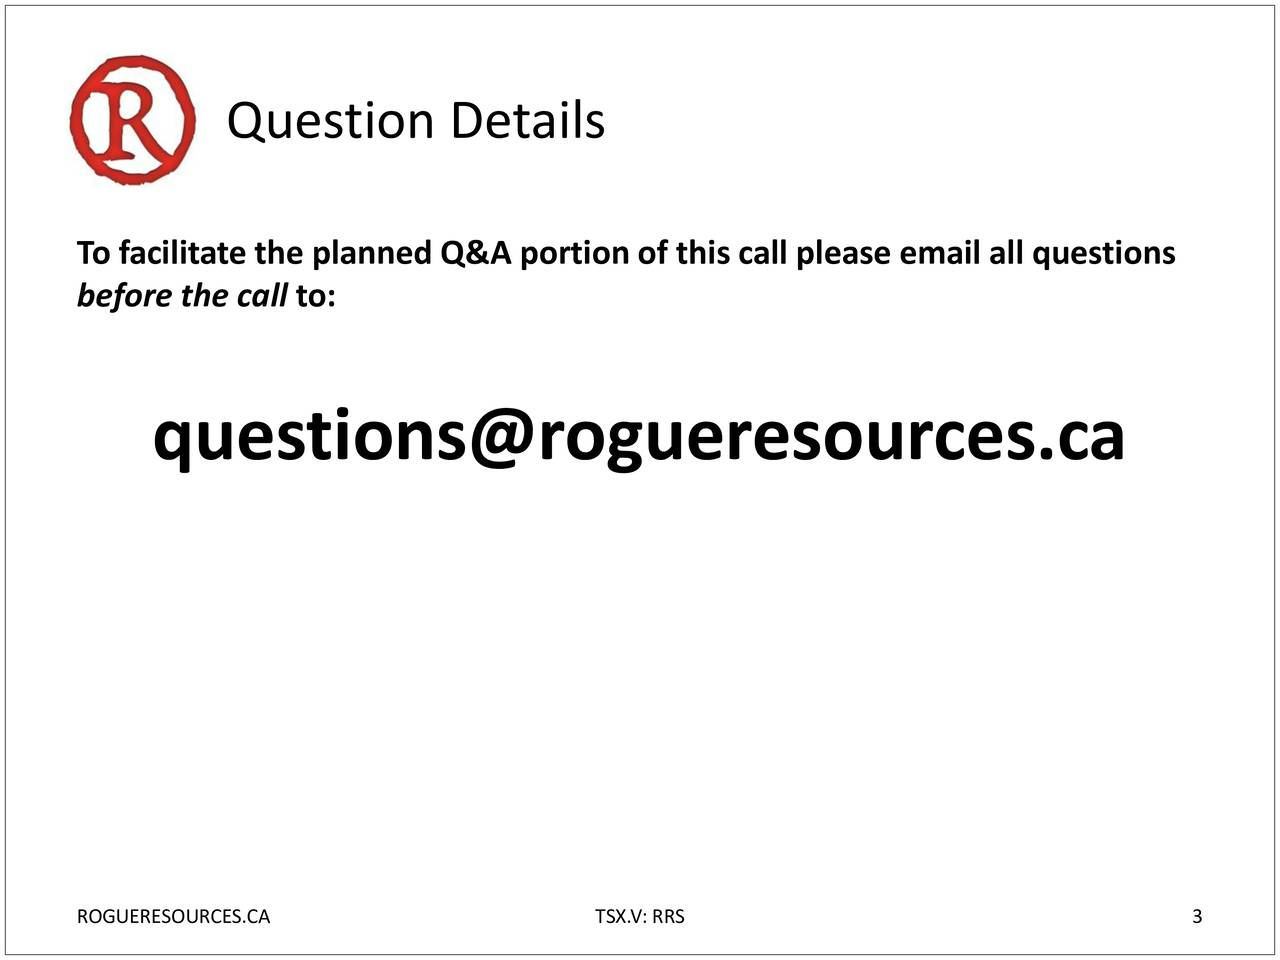 To facilitate the planned Q&A portion of this call please email all questions before the call to: questions@rogueresources.ca ROGUERESOURCES.CA TSX.V: RRS 3